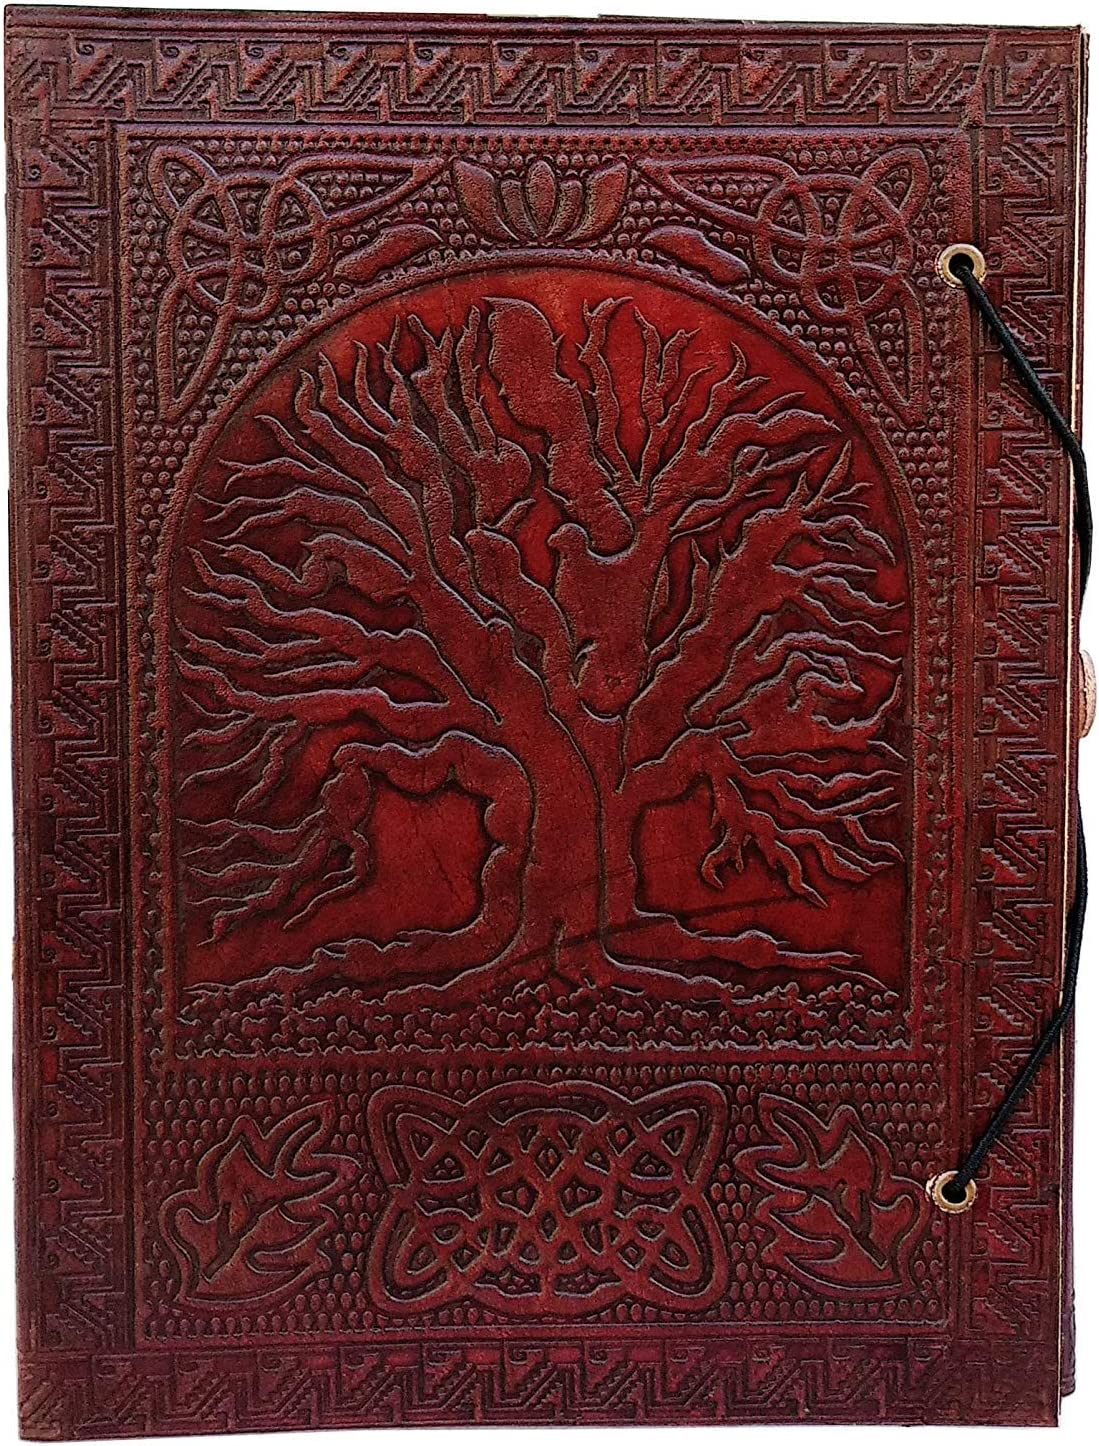 Large Tree of Life Leather Journal Bound Leather Journal Leather Journal to Write in Leather Journal Embosses Leather journals Fantasy Leather journals notebooks Leather journals for Men & Women